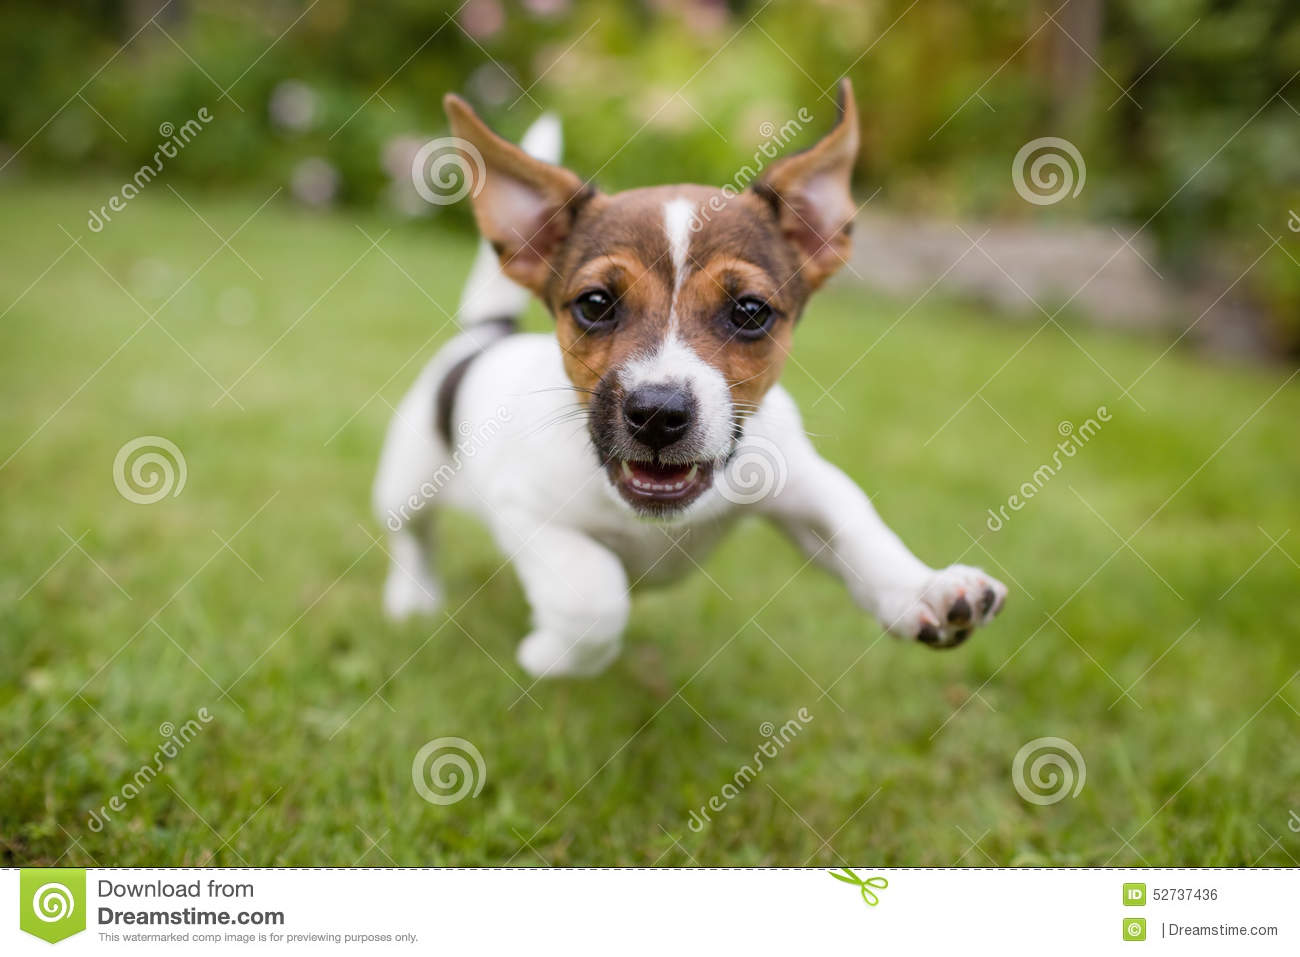 Funny Happy Running Puppy Dog Stock Photo Image Of Russel